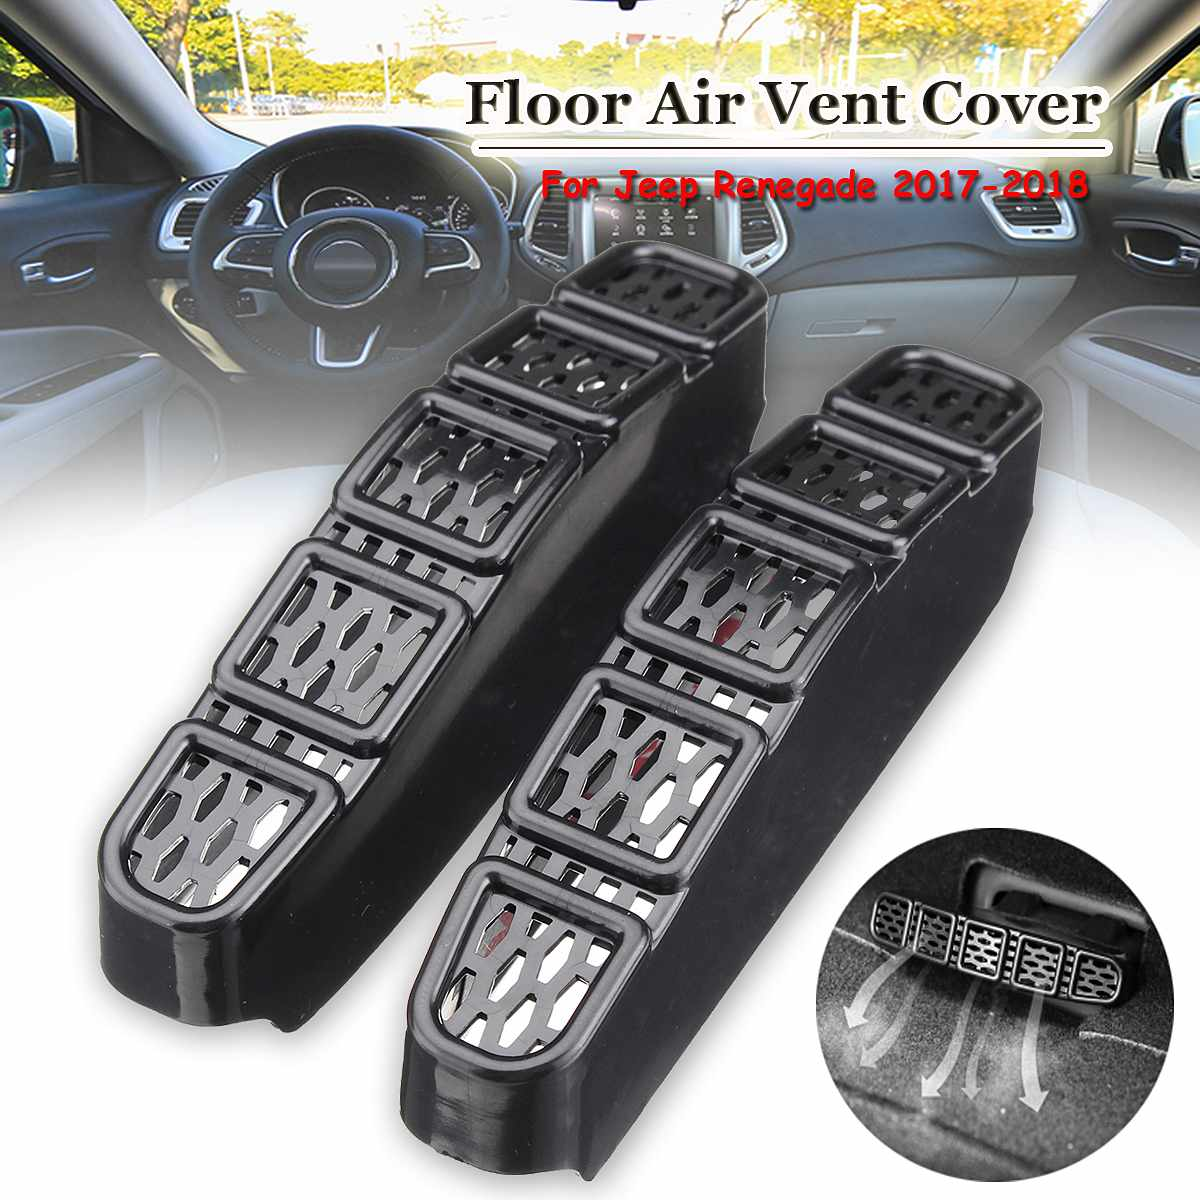 2Pcs Car Under Seat Floor Rear A/C Heater Air Conditioner Duct Vent Outlet Protection Cover For <font><b>Jeep</b></font> Renegade <font><b>Compass</b></font> 2017 <font><b>2018</b></font> image